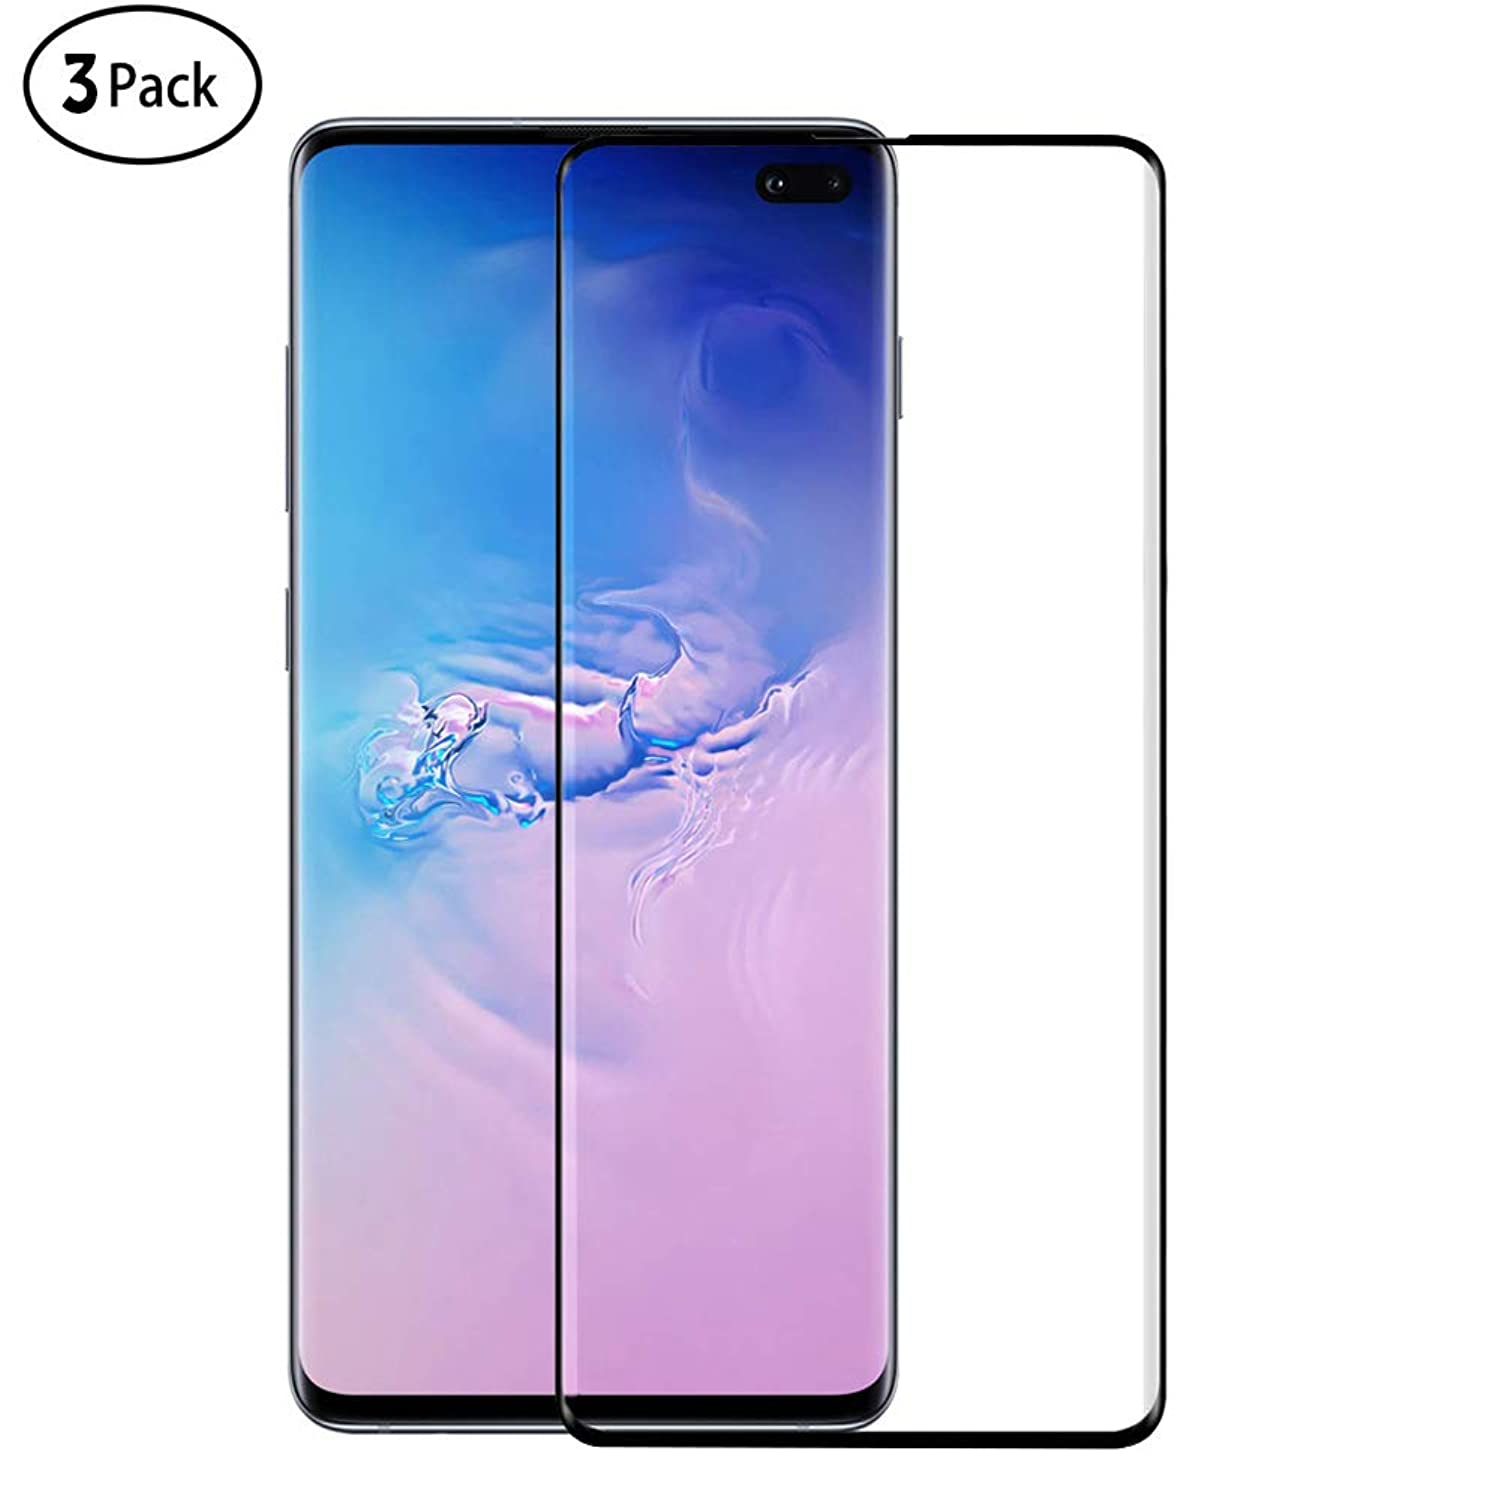 Galaxy S10 Plus Screen Protector, Dooge (3 Pack) [Fingerprint ID Compatible] [Case-Friendly] [3D Coverage] [Scratchproof] Clear HD Full Coverage Protector Glass for Samsung Galaxy S10 Plus